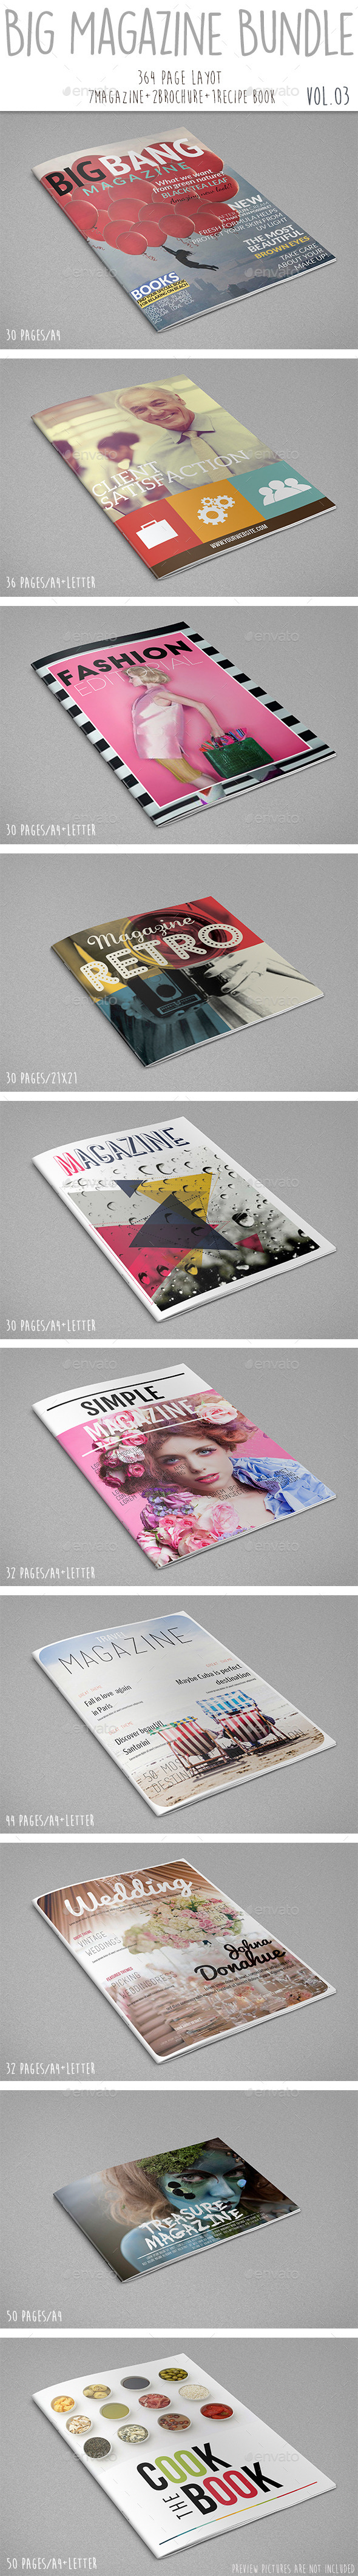 GraphicRiver Big Magazine Bundle Vol.03 11766926